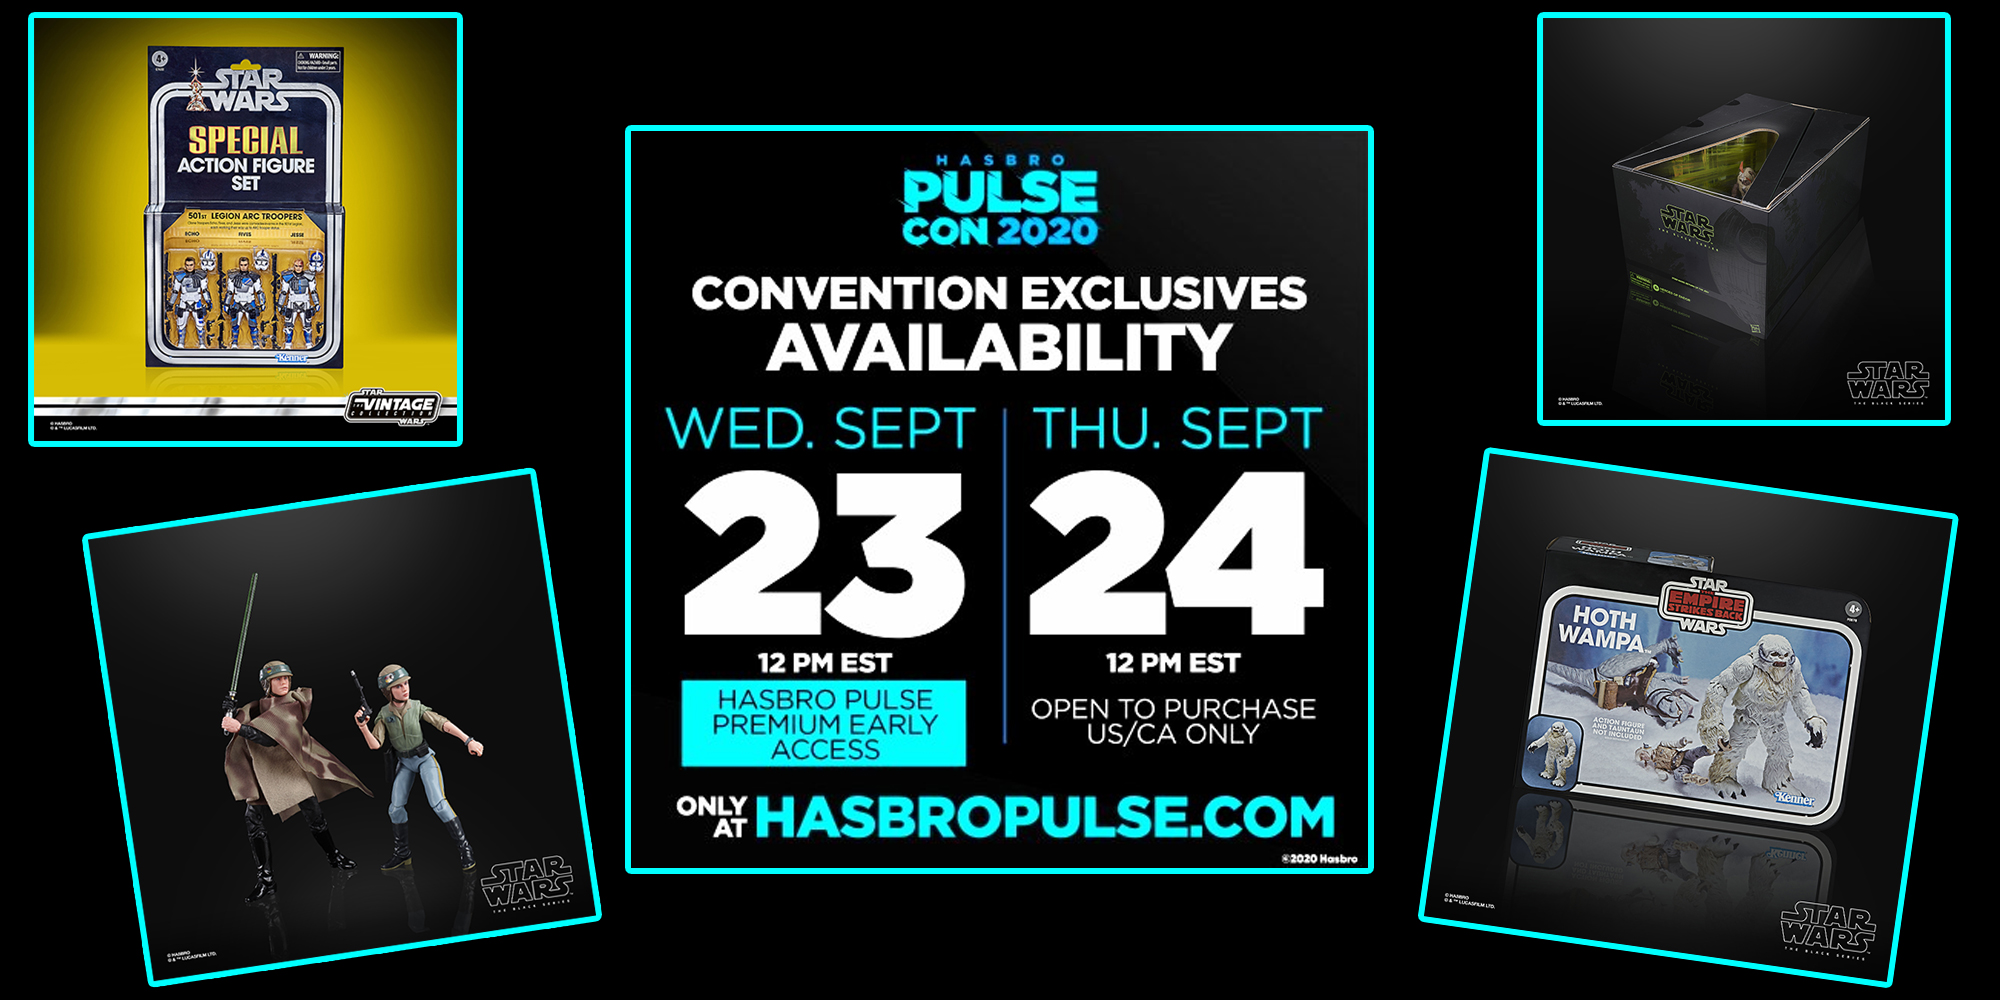 Star Wars exclusives at Hasbro Pulse